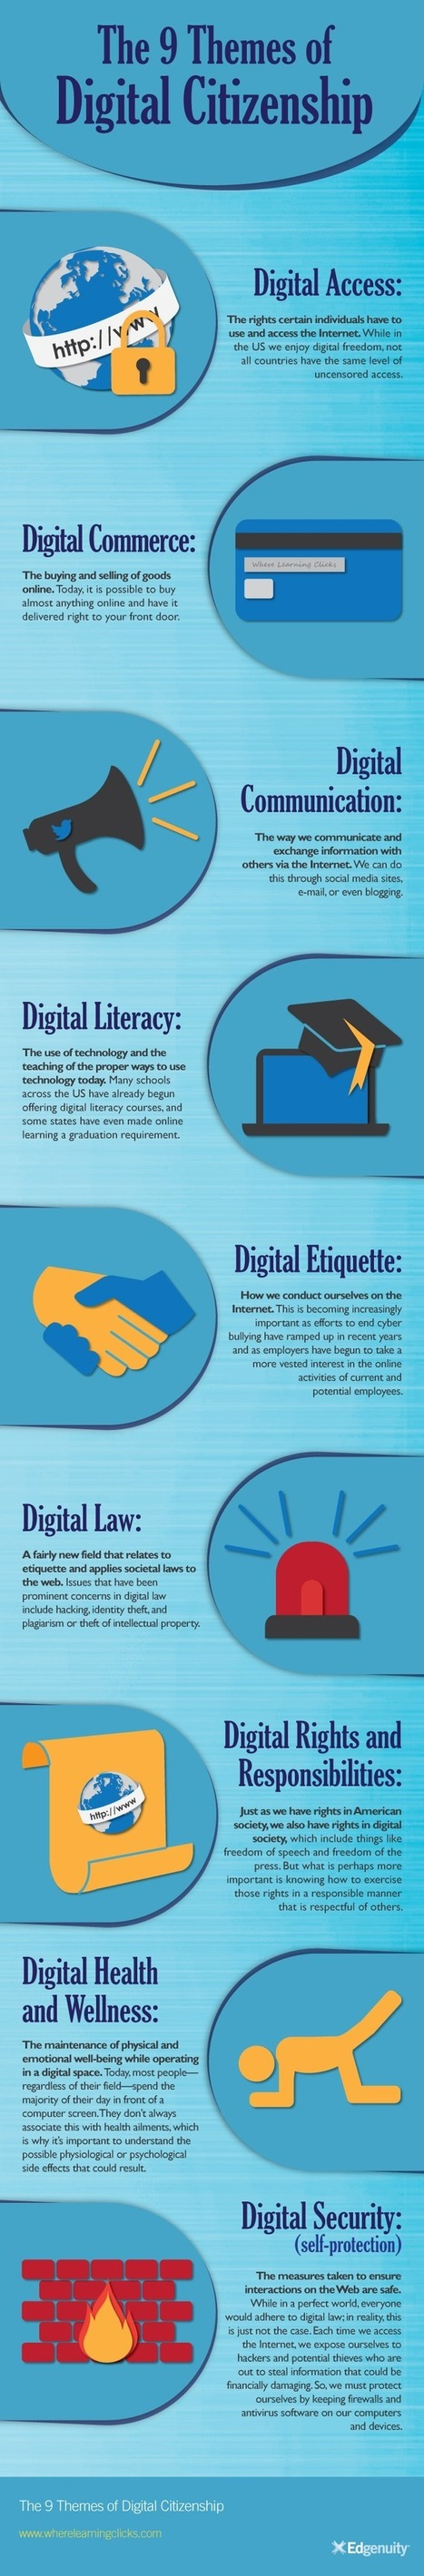 How to Teach the 9 Themes of Digital Citizenship Infographic - e-Learning Infographics | Affordable Learning | Scoop.it